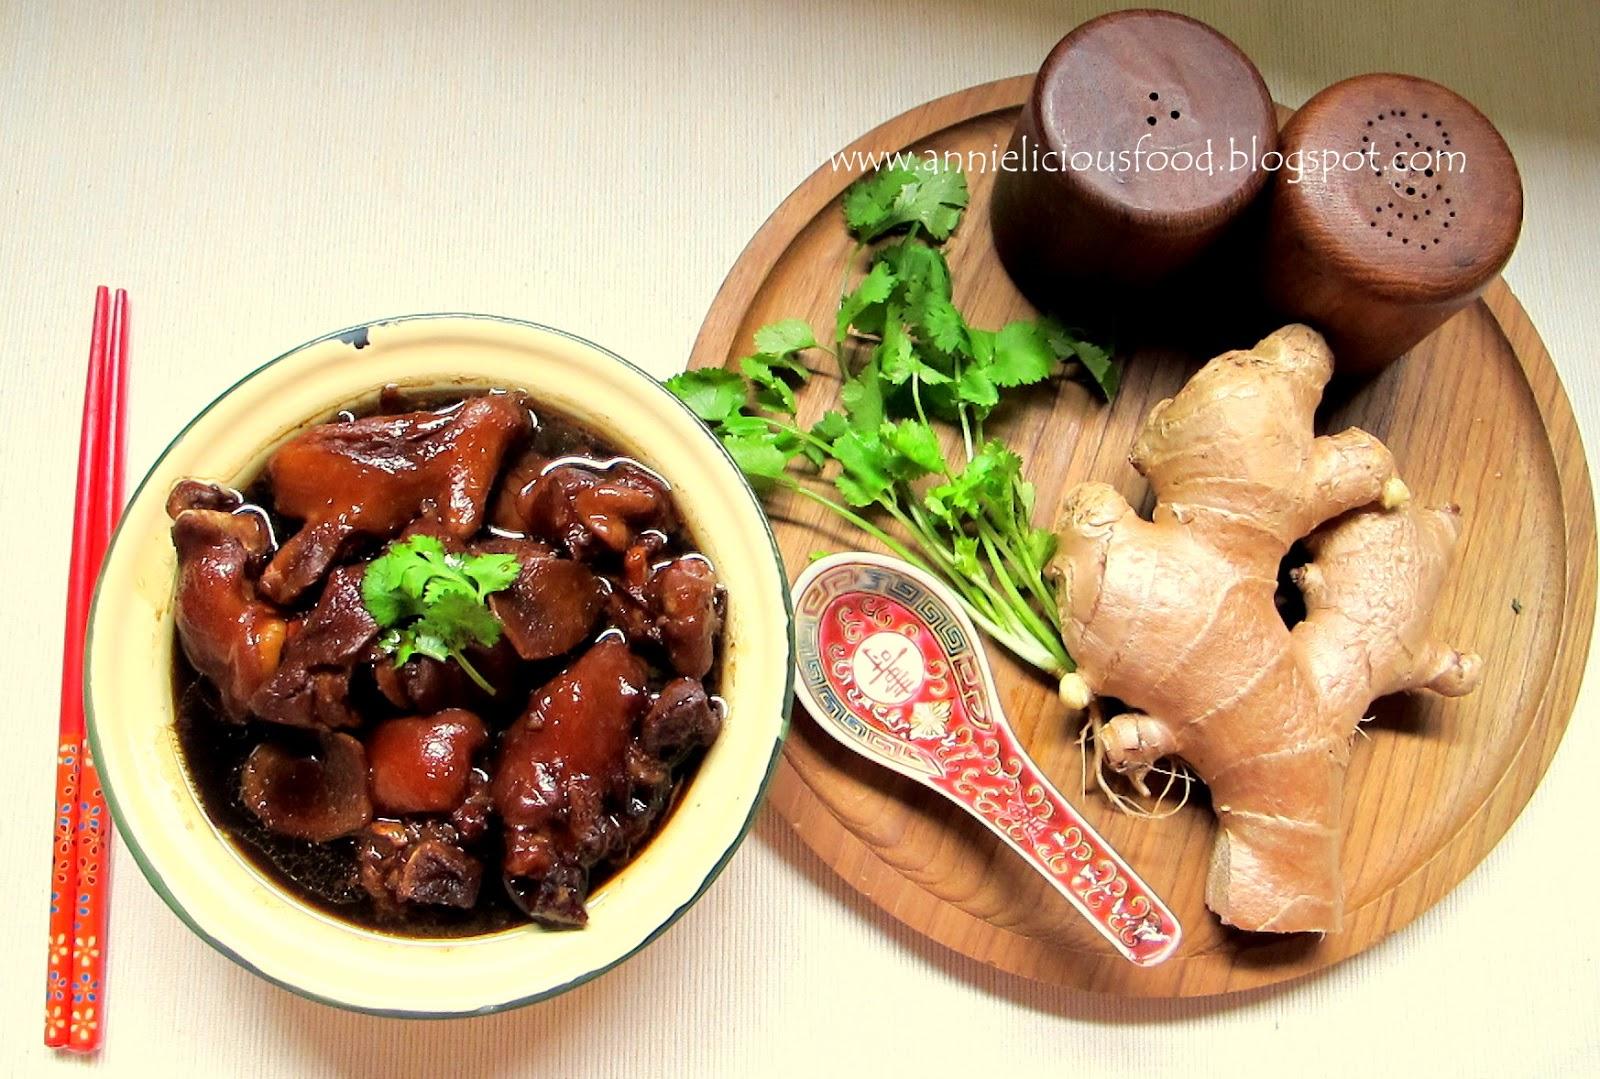 Mdm Chai's Pig Trotter In Vinegar With Ginger (猪脚醋)